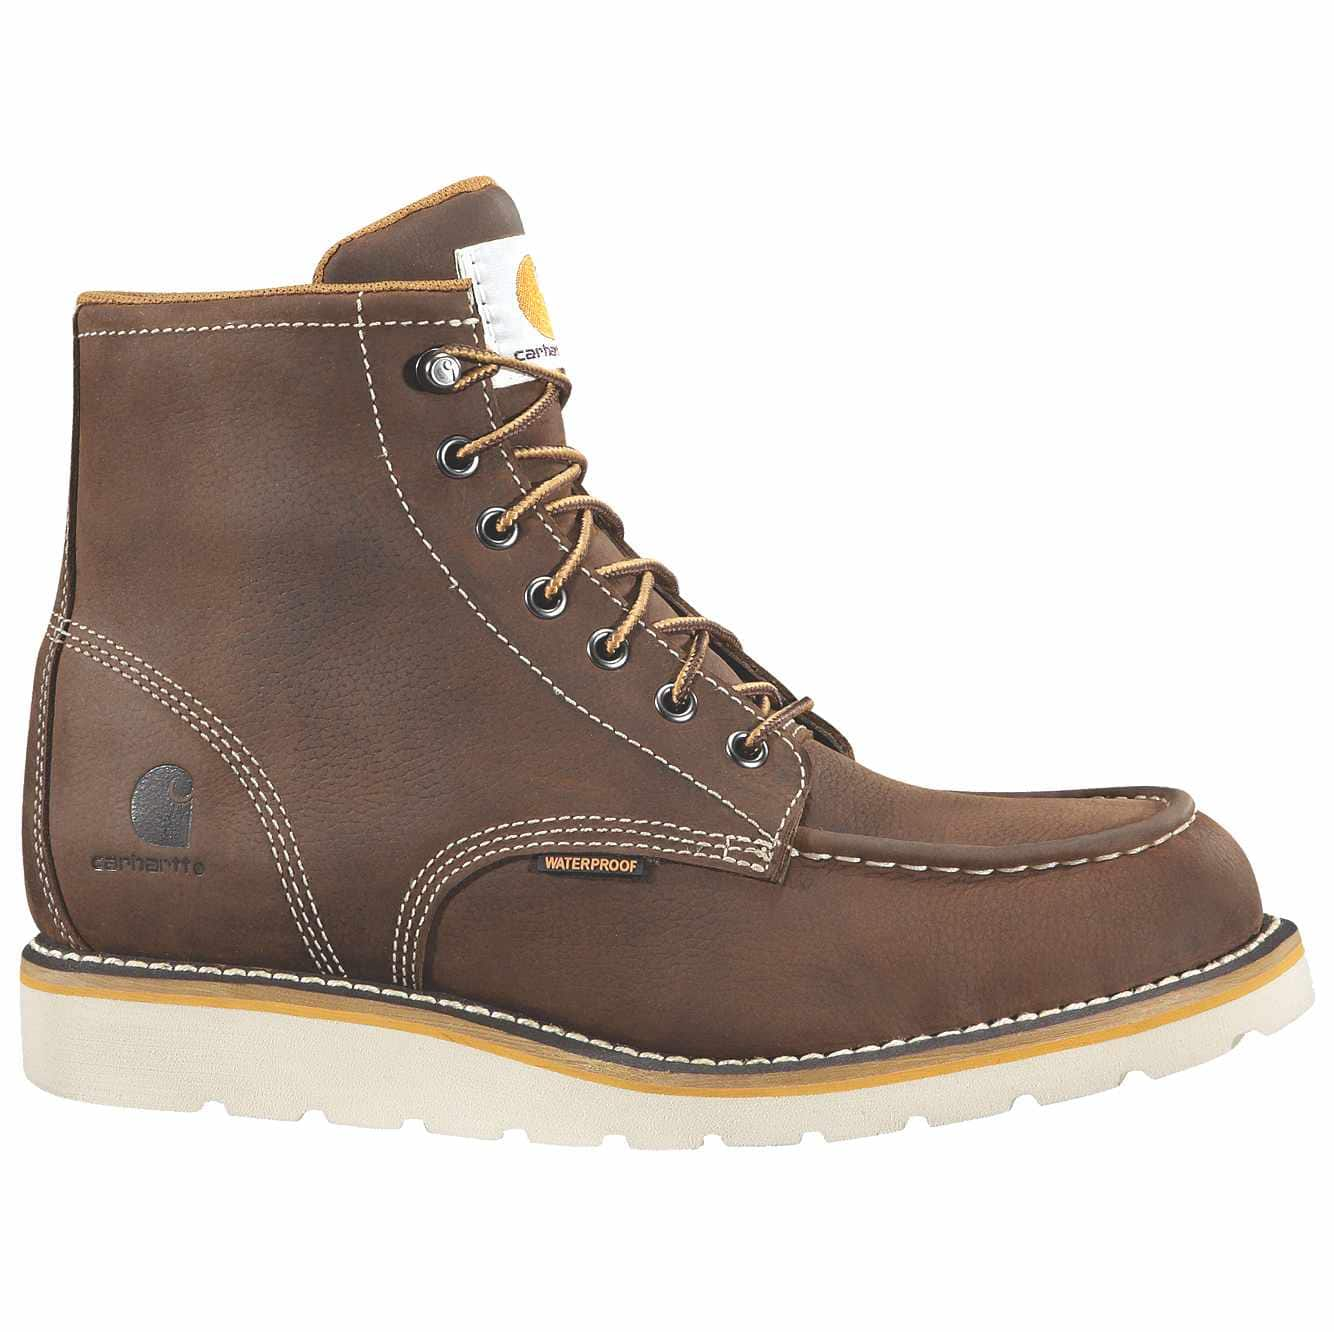 Picture of 6-Inch Steel Toe Wedge Boot in Brown Oil Tanned